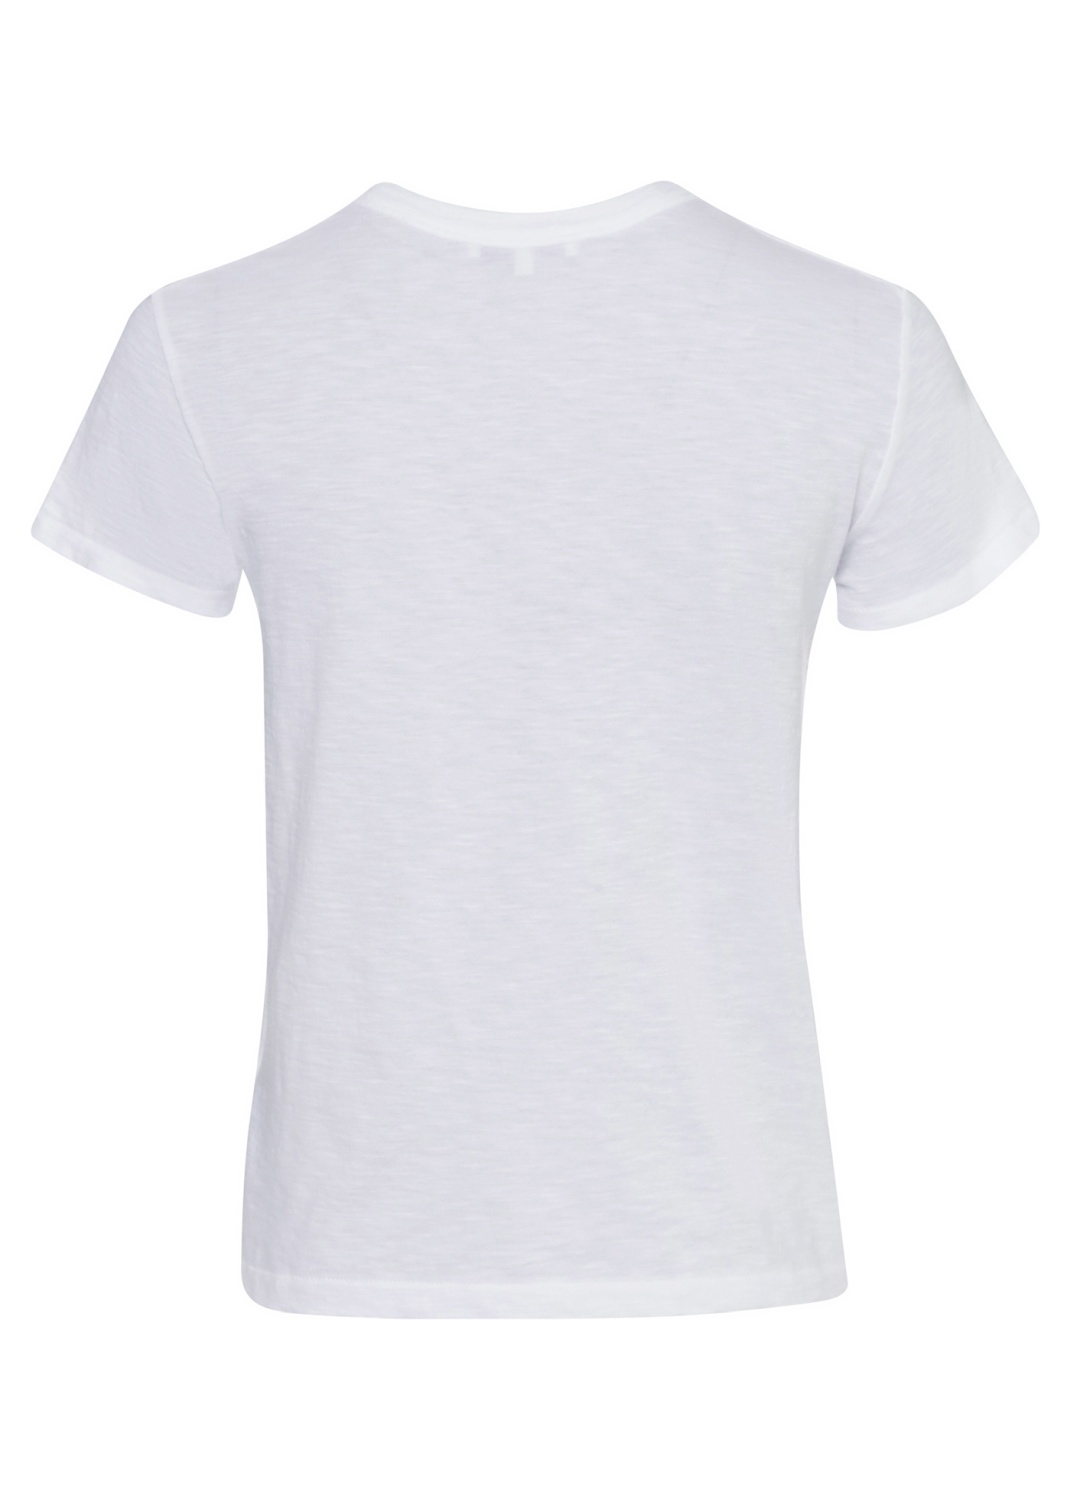 S/S RELAXED TEE image number 1